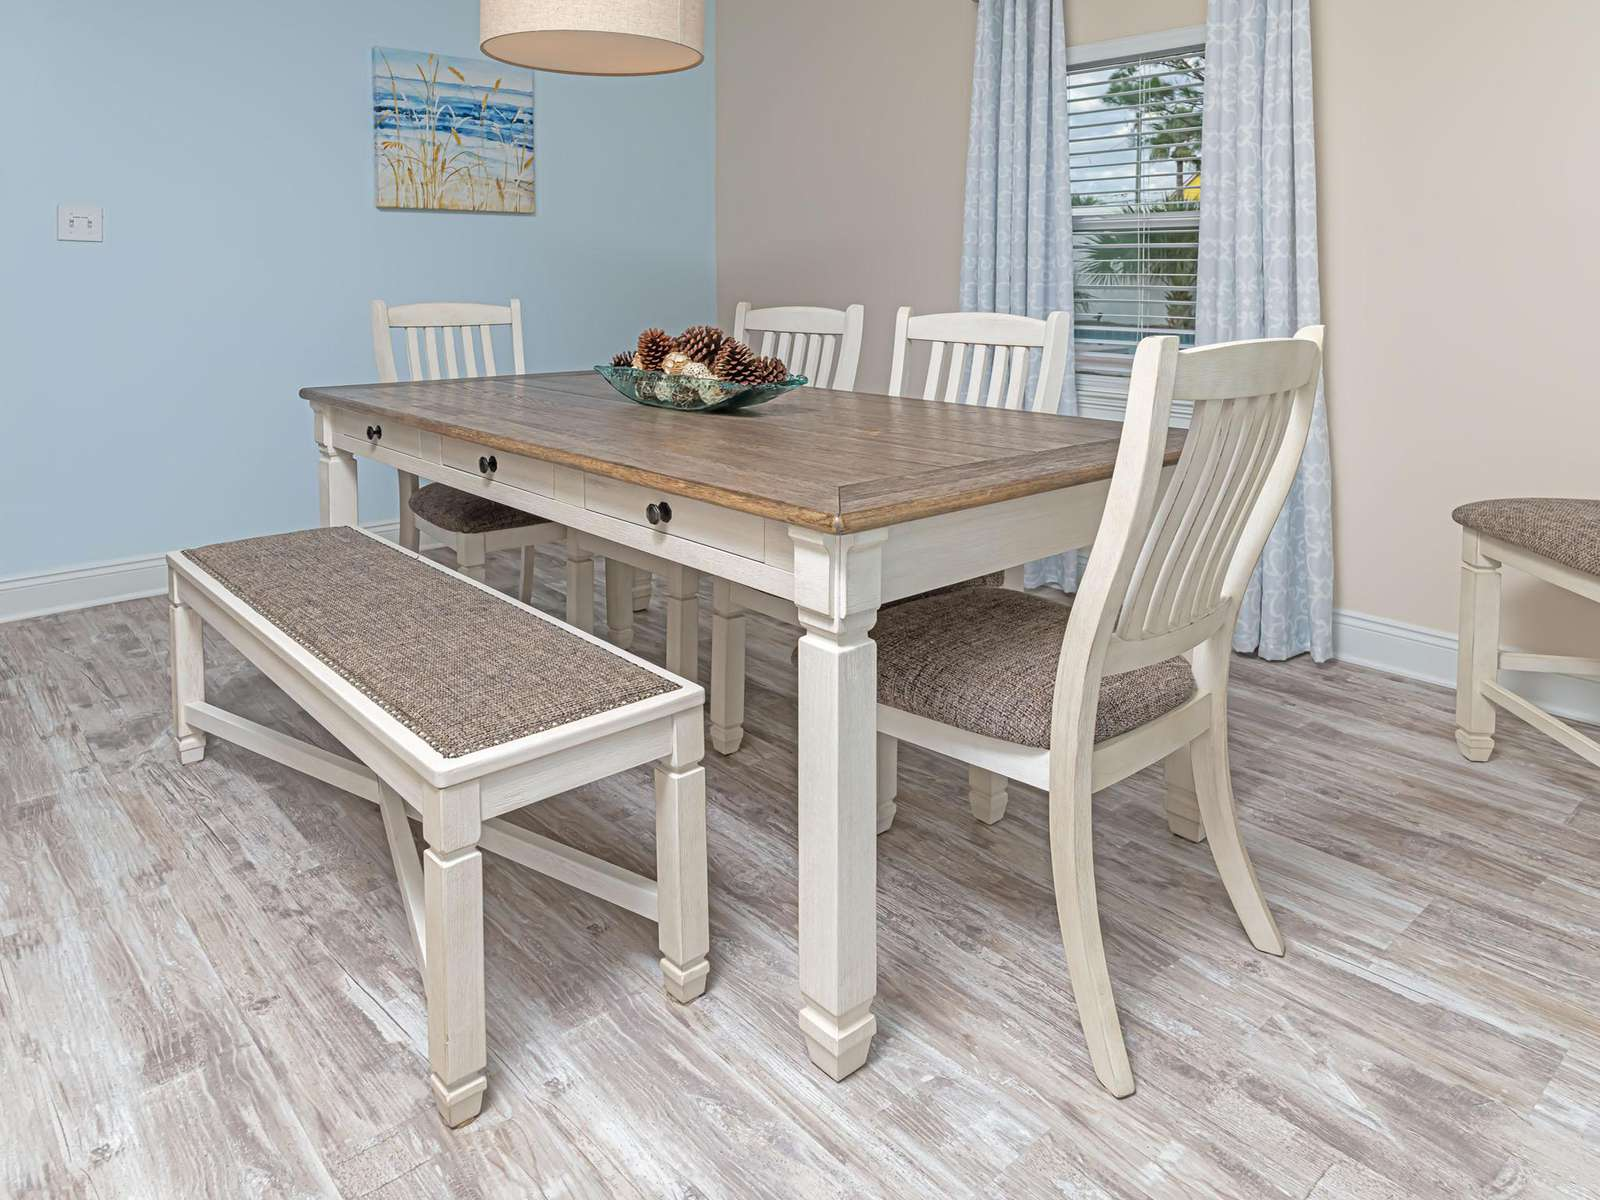 Great dining space for family dinners!